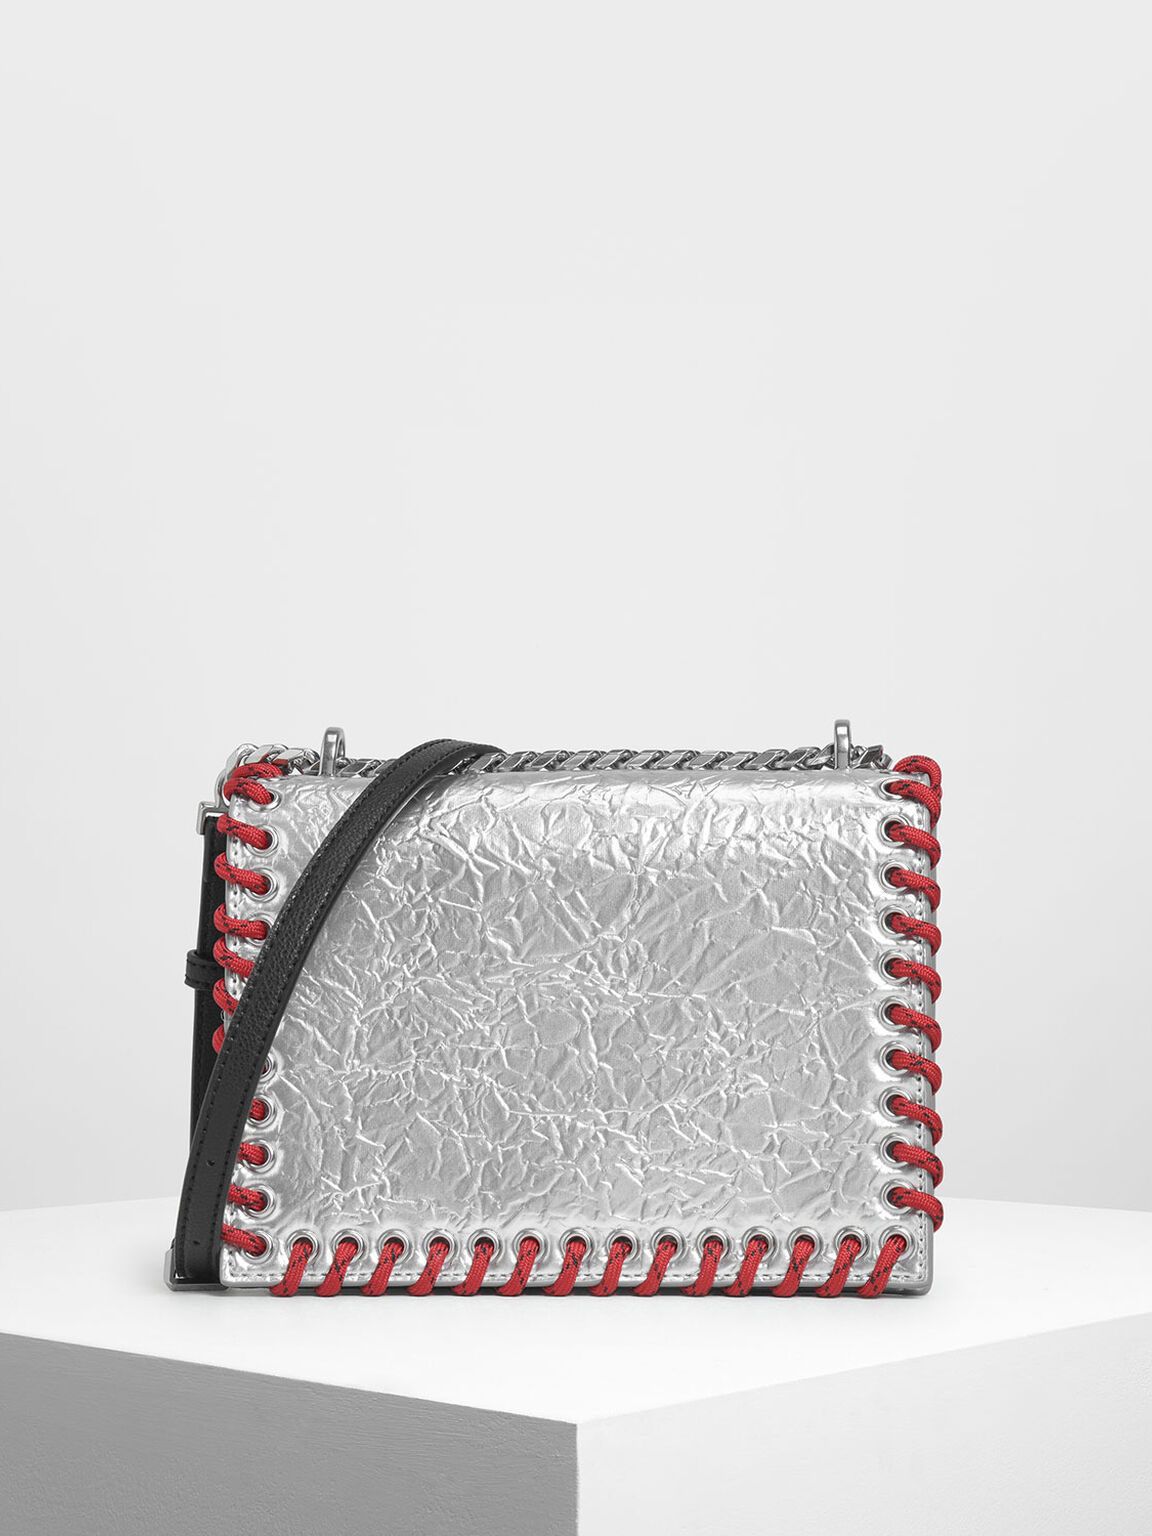 Grommet Accented Crossbody Bag, Silver, hi-res